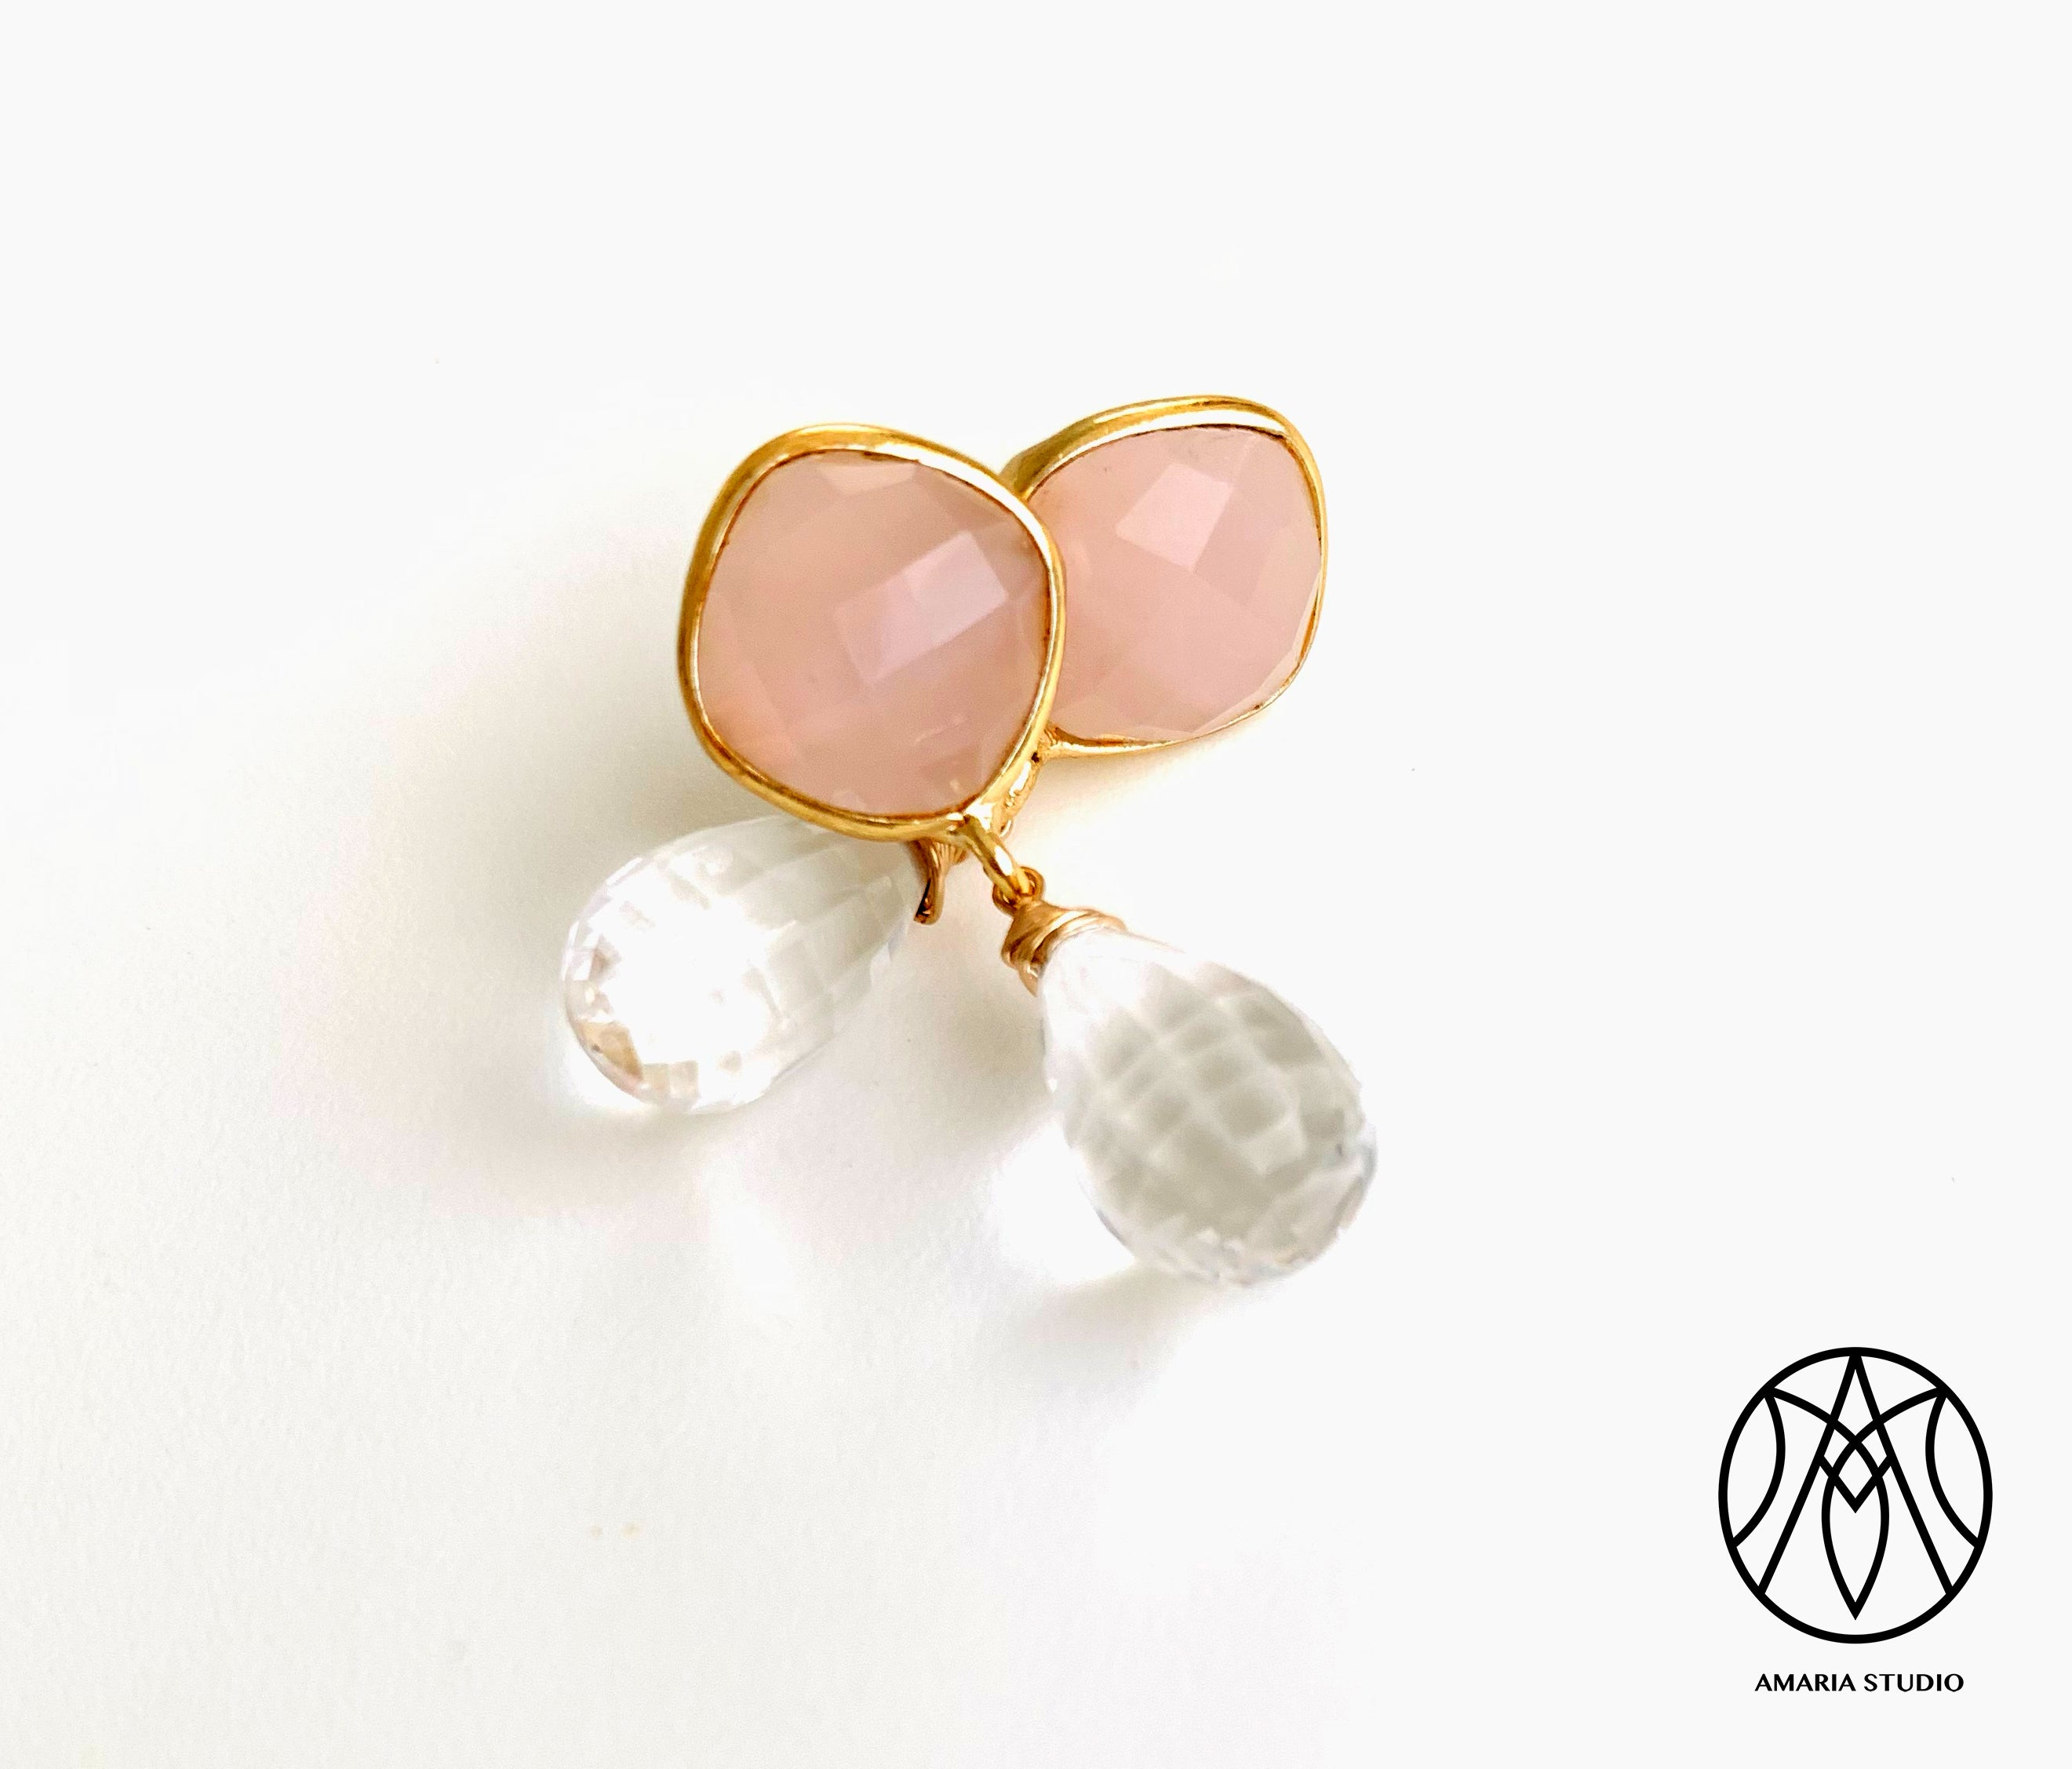 Rose and crystal quartz earrings - Amaria Studio